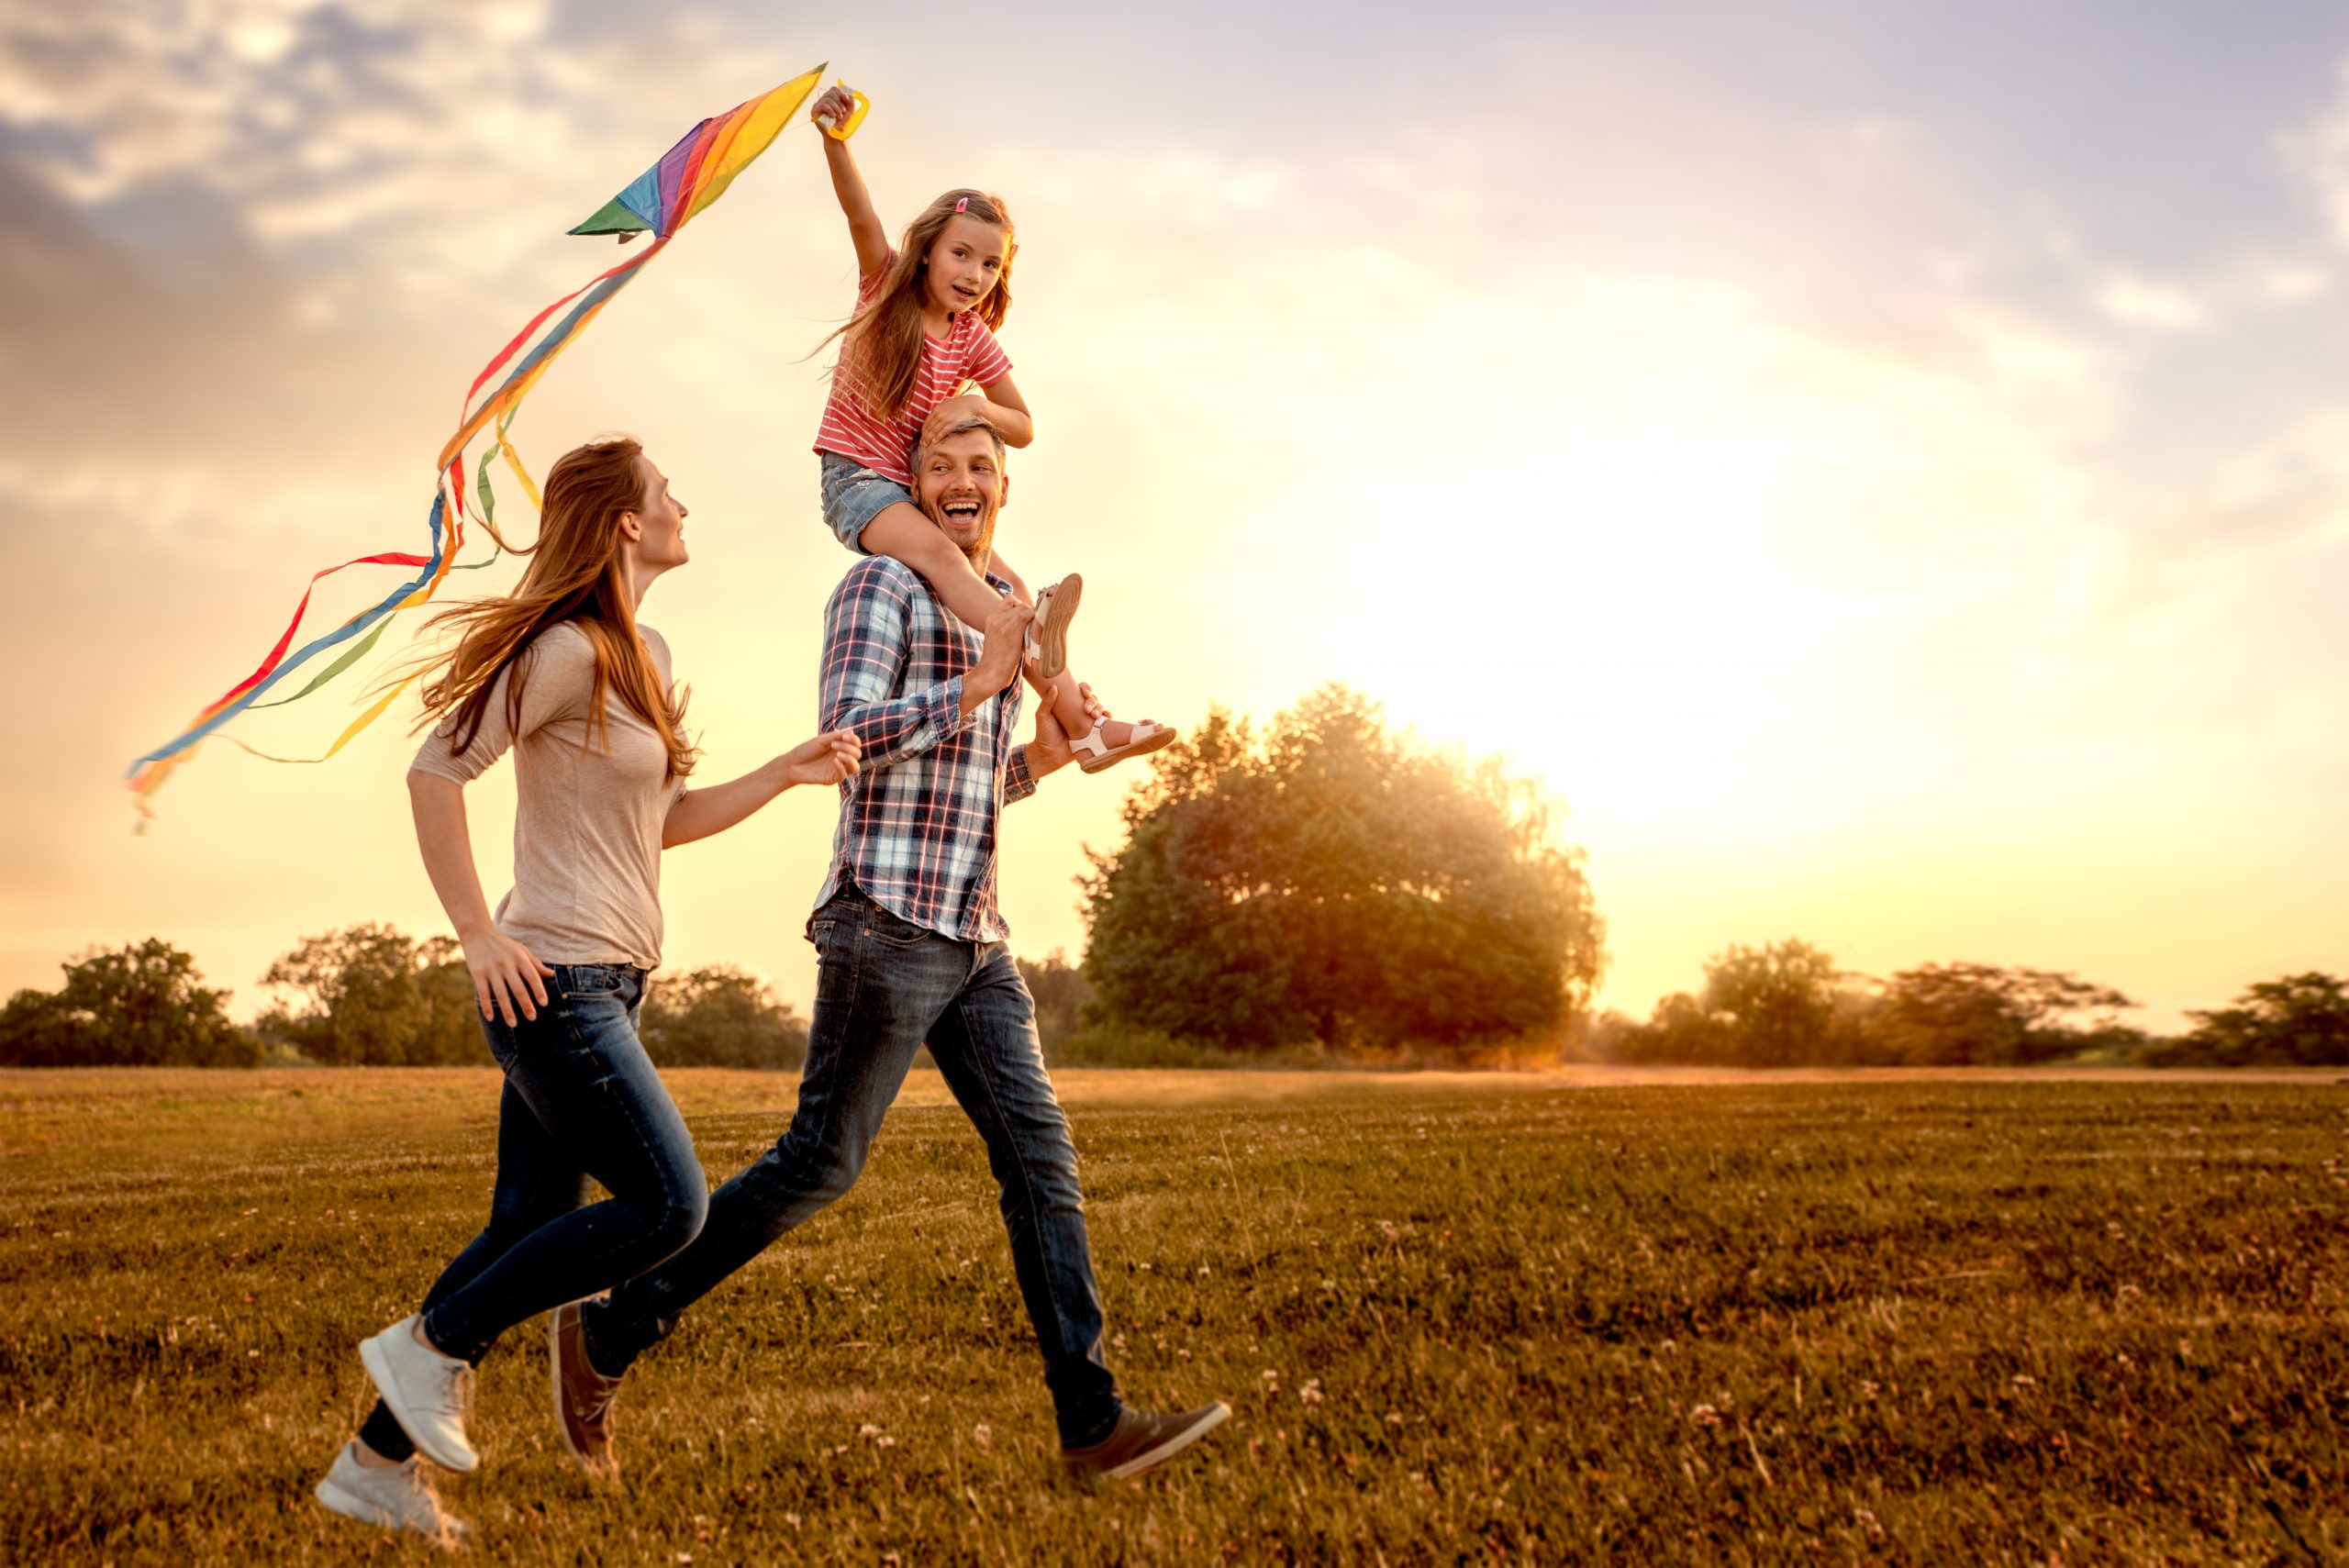 Kid flying kite with parents